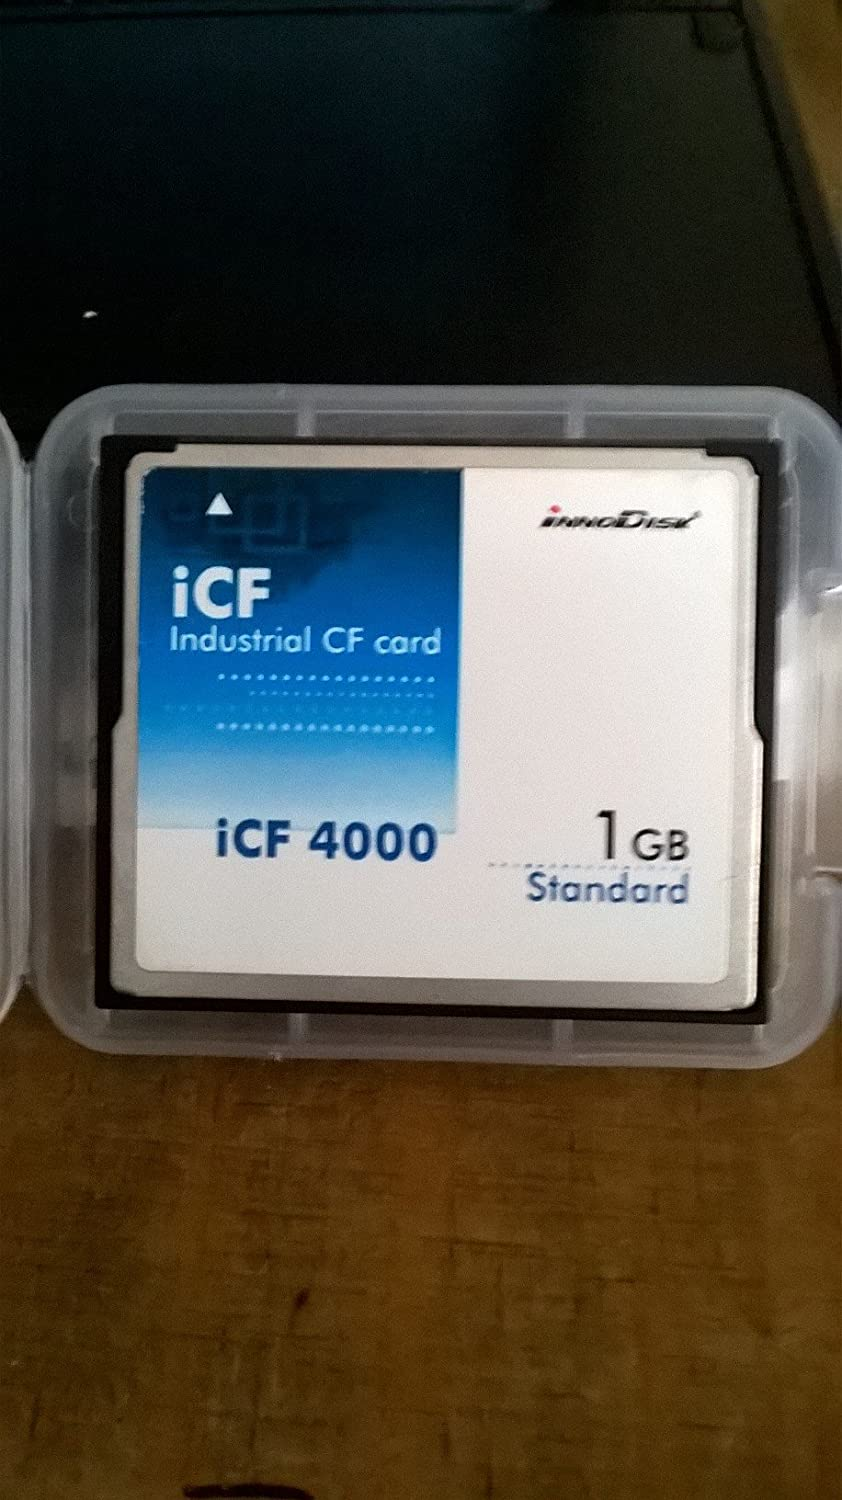 INNODISK CompactFlash Card iCF 4000 memory Card CF Industrial Card CF 1GB Click 2 Shop Now 9465891778123